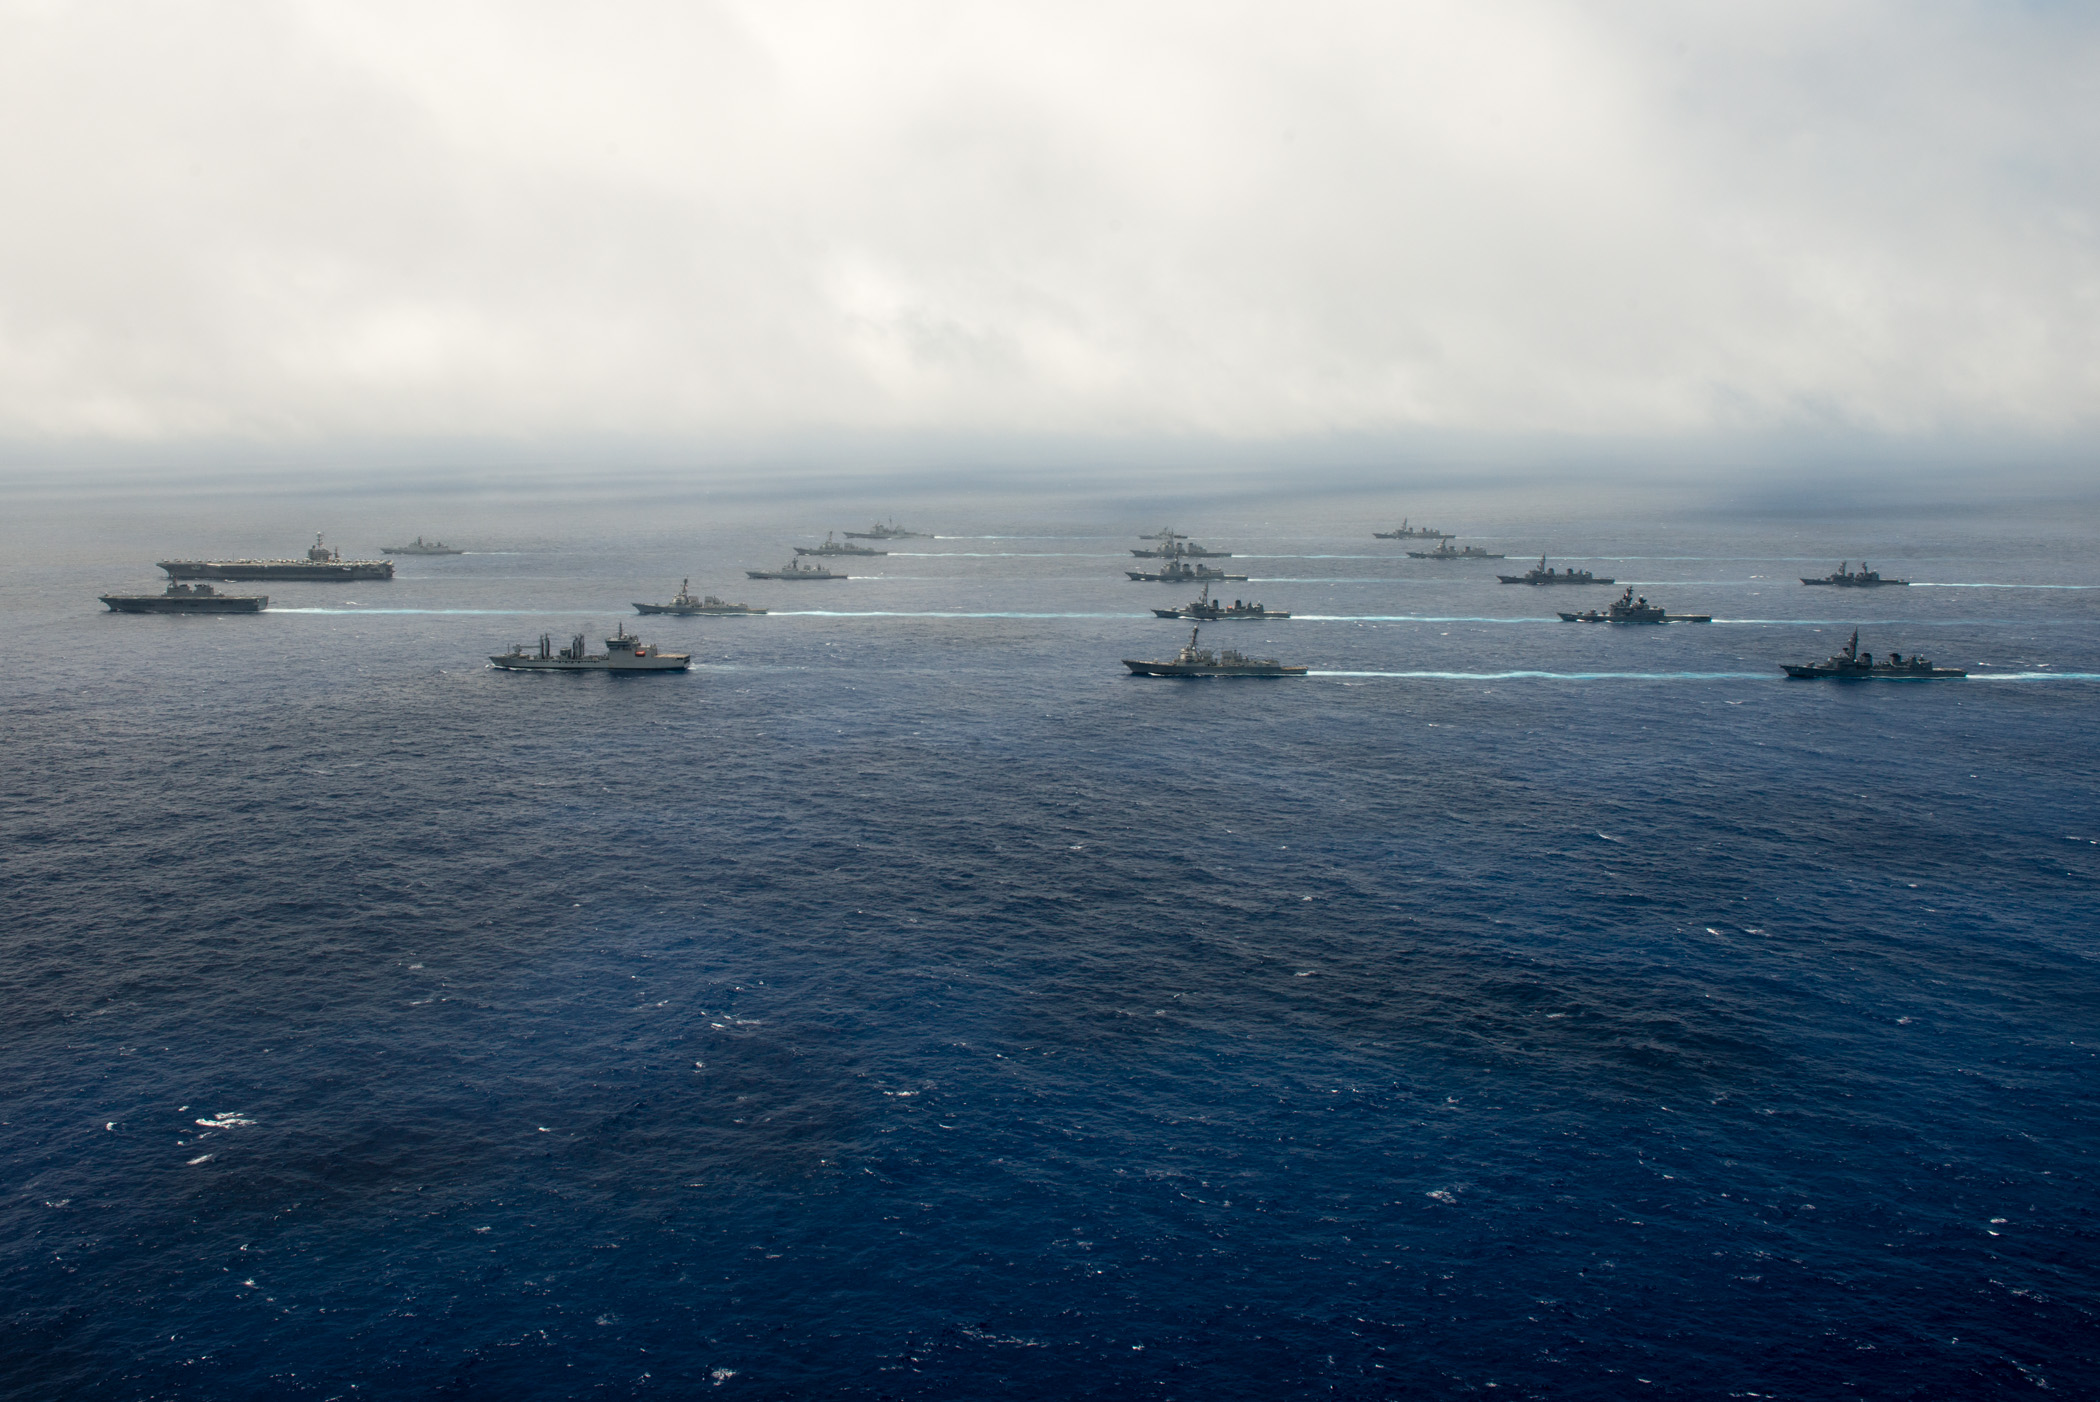 Malabar 2016 participants from the Indian Navy, Japanese Maritime Self-Defense Force (JMSDF), and U.S. Navy sail in formation. US Navy photo.